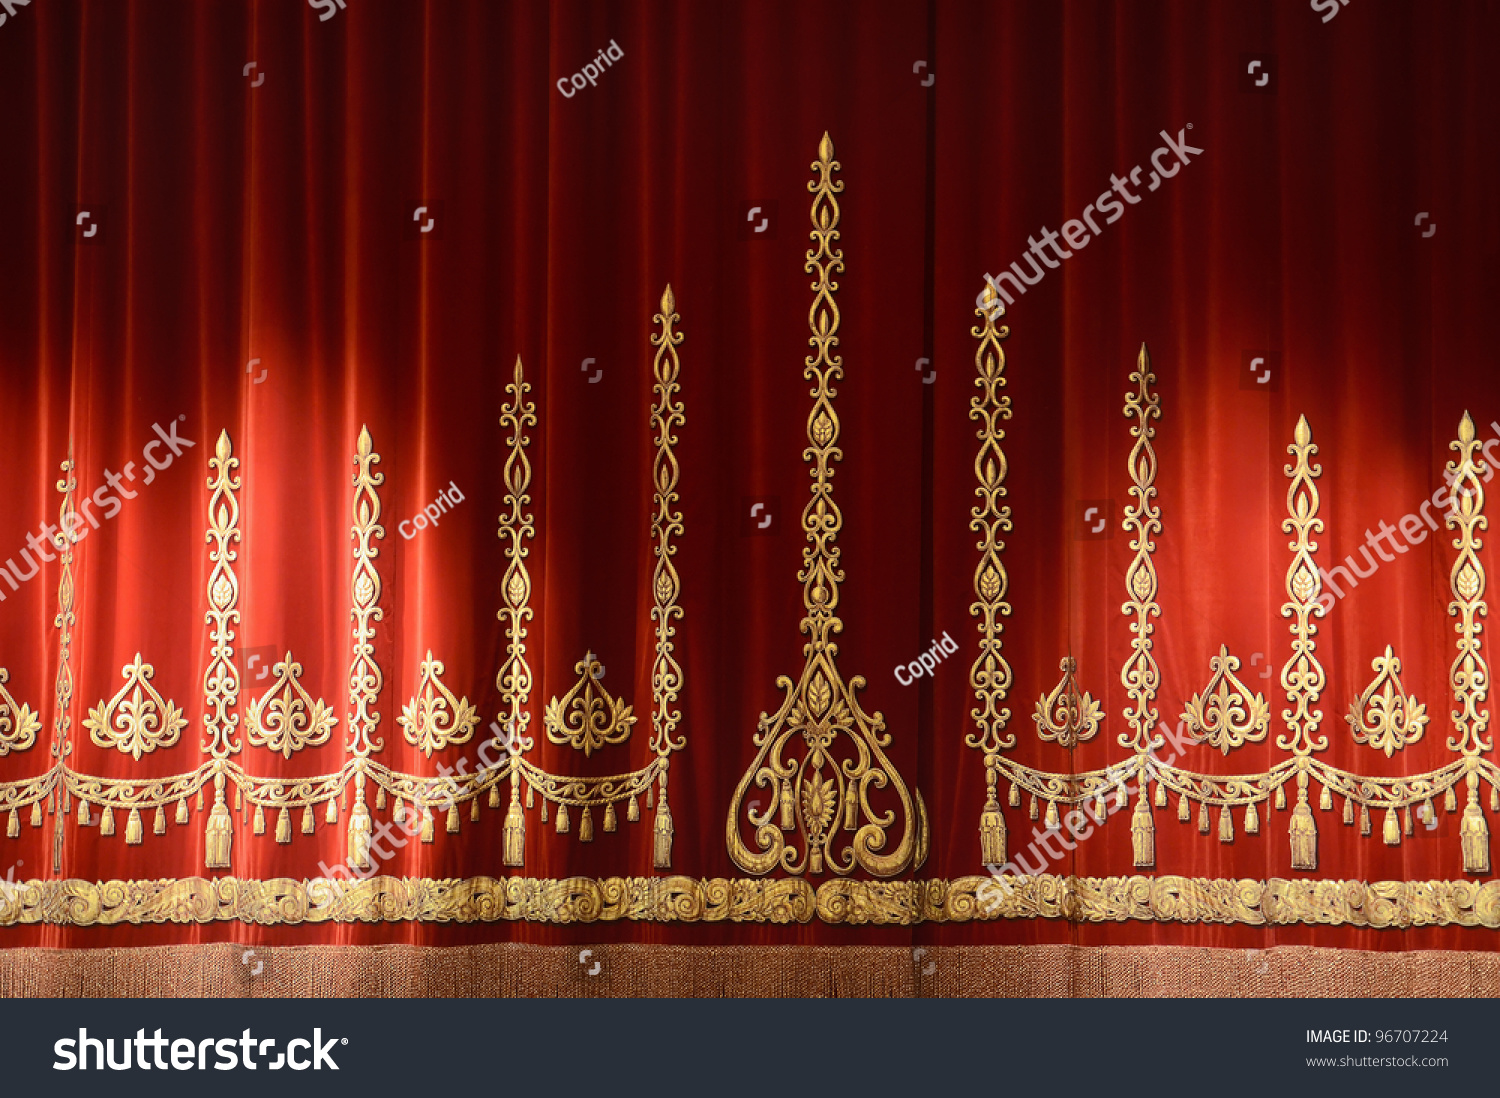 Red gold stage theater curtain background stock photo for Red and gold drapes